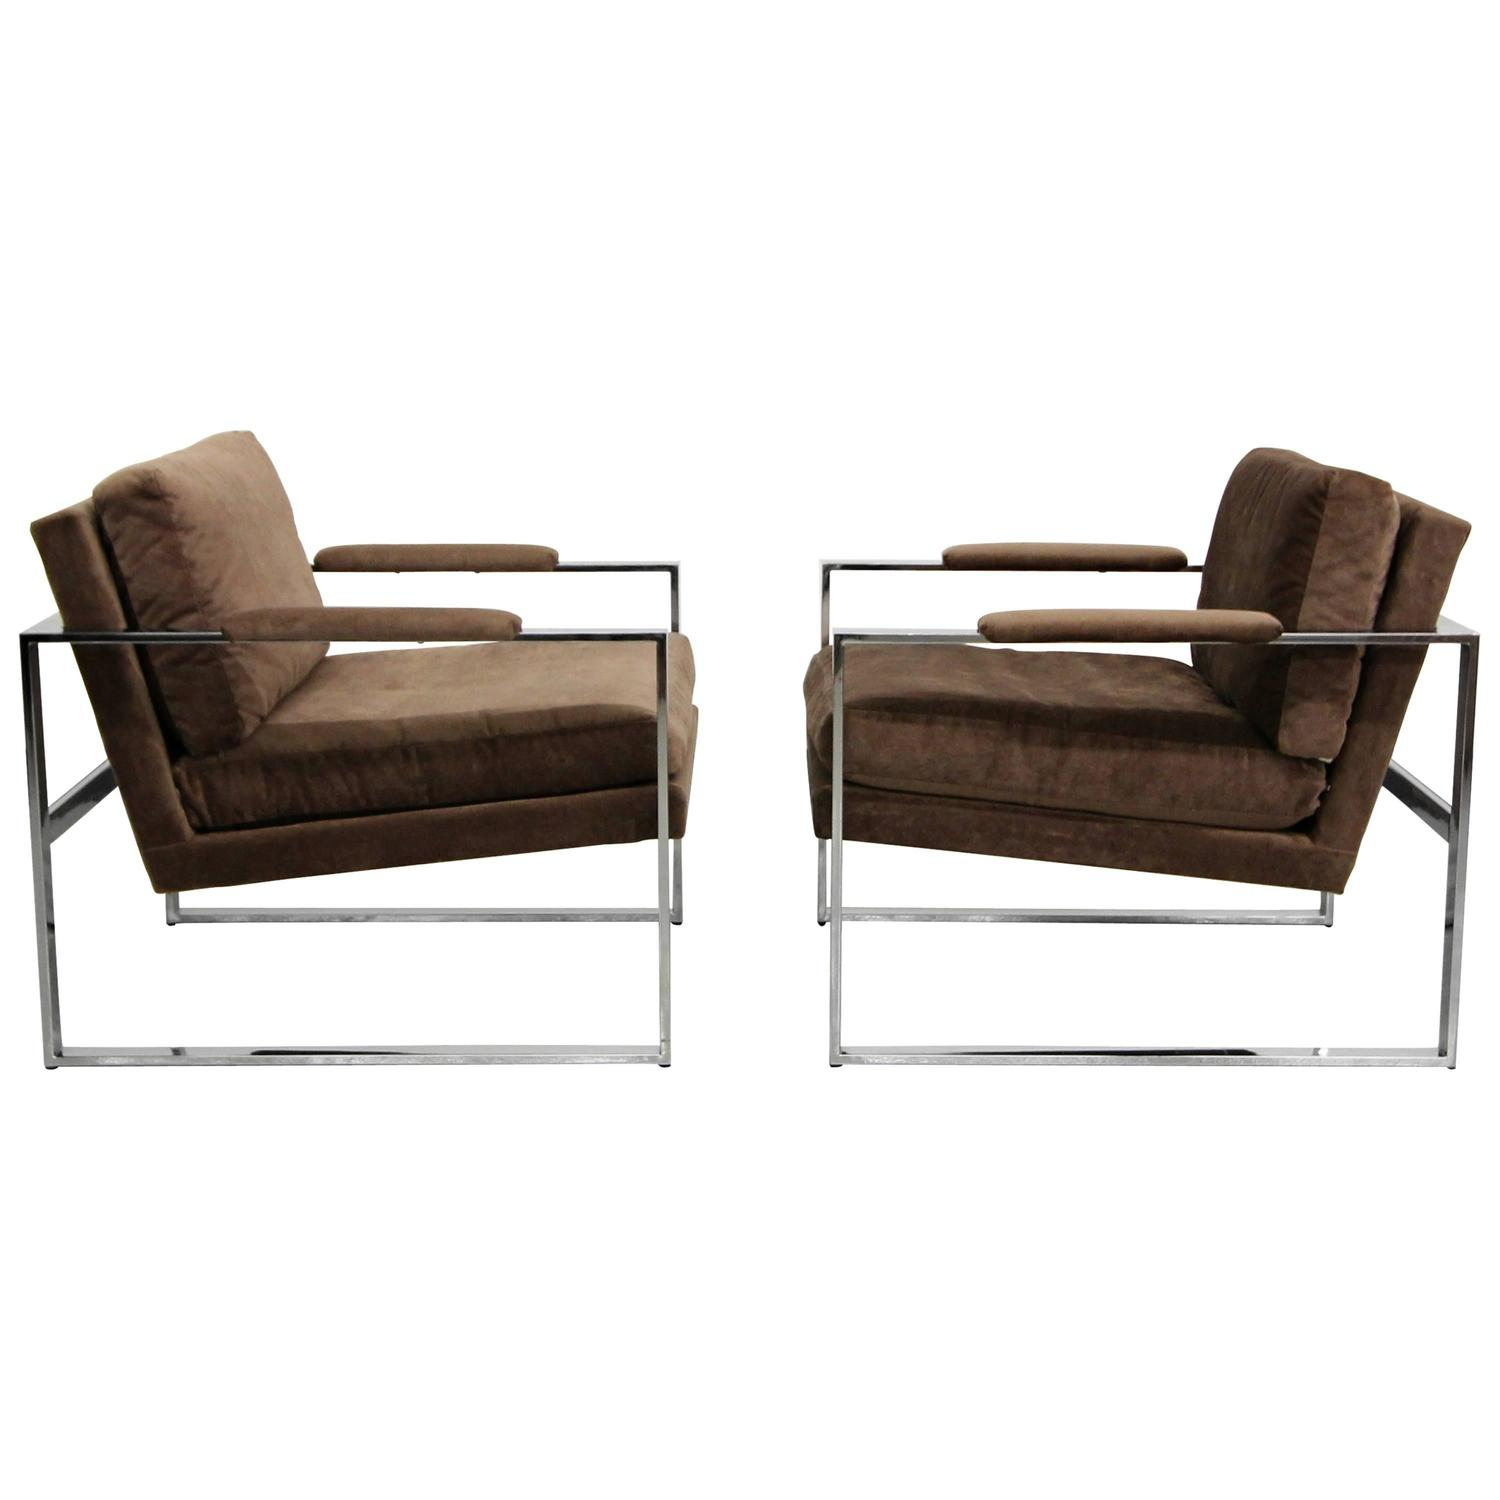 Pair of Floating Chrome Midcentury Lounge Chairs at 1stdibs